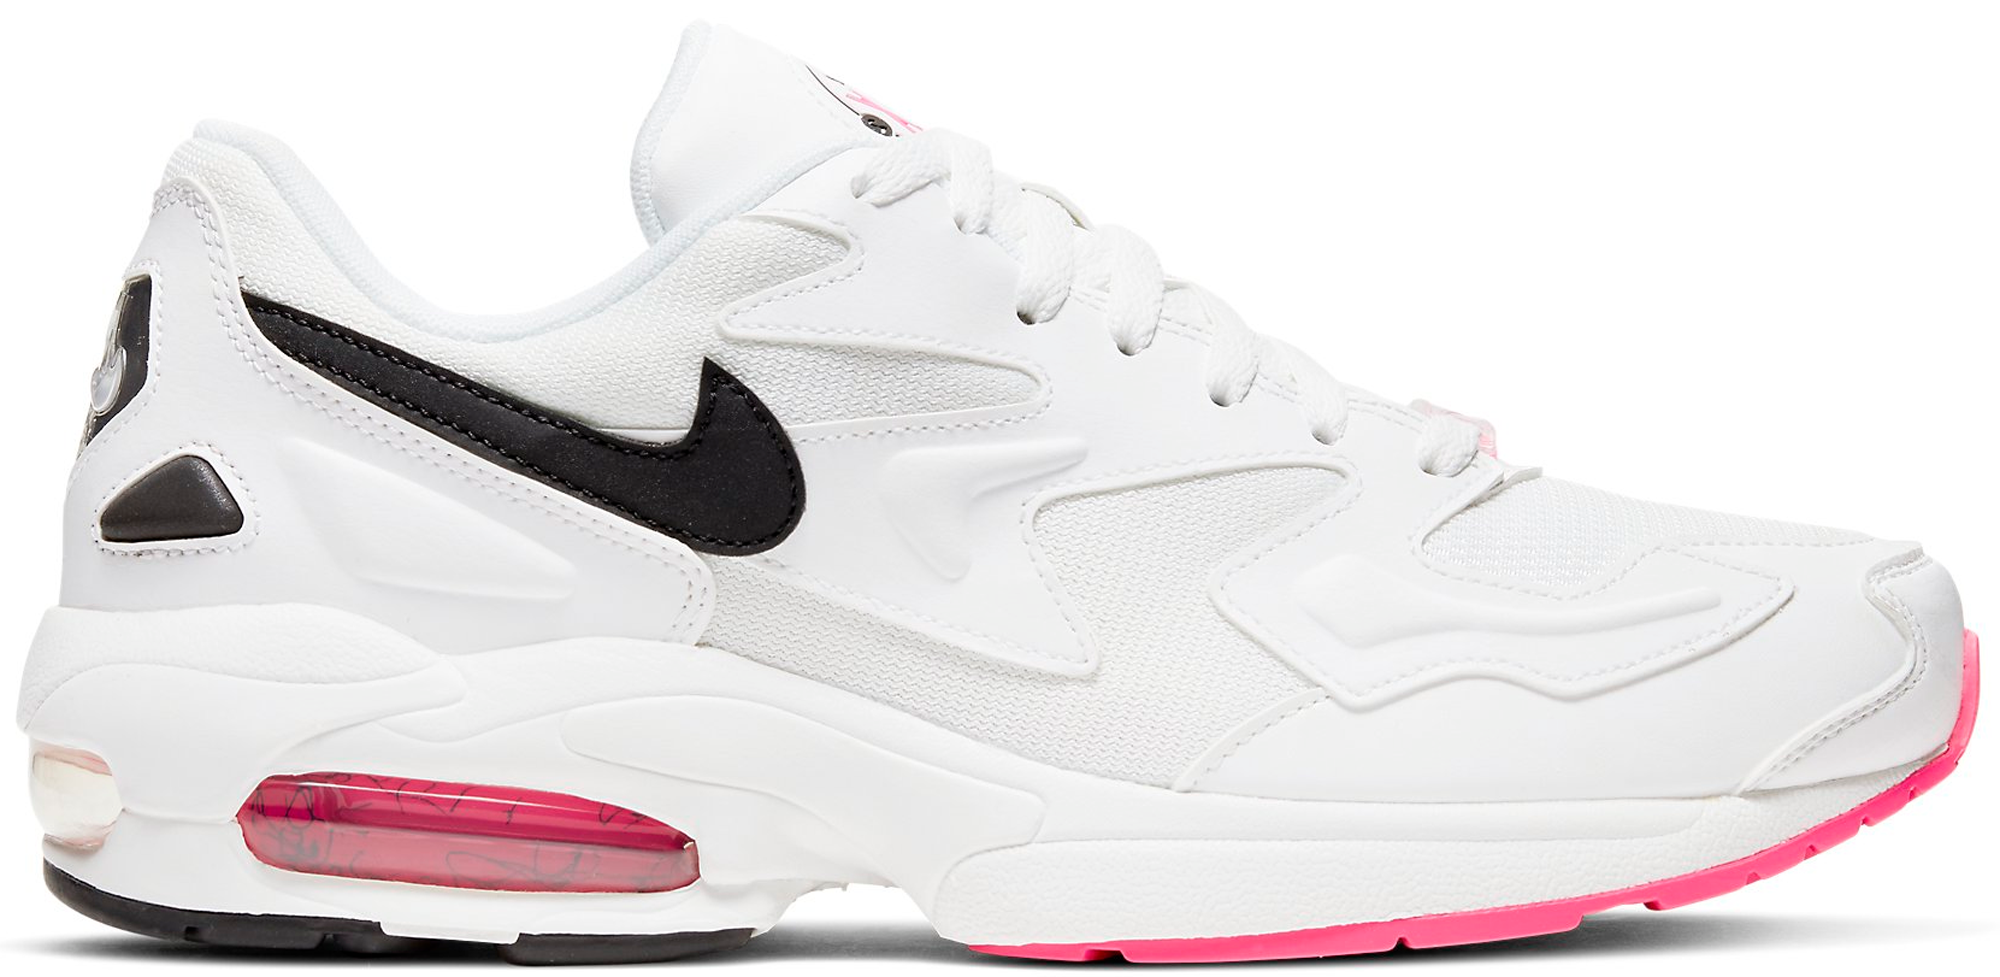 black pink and white air max